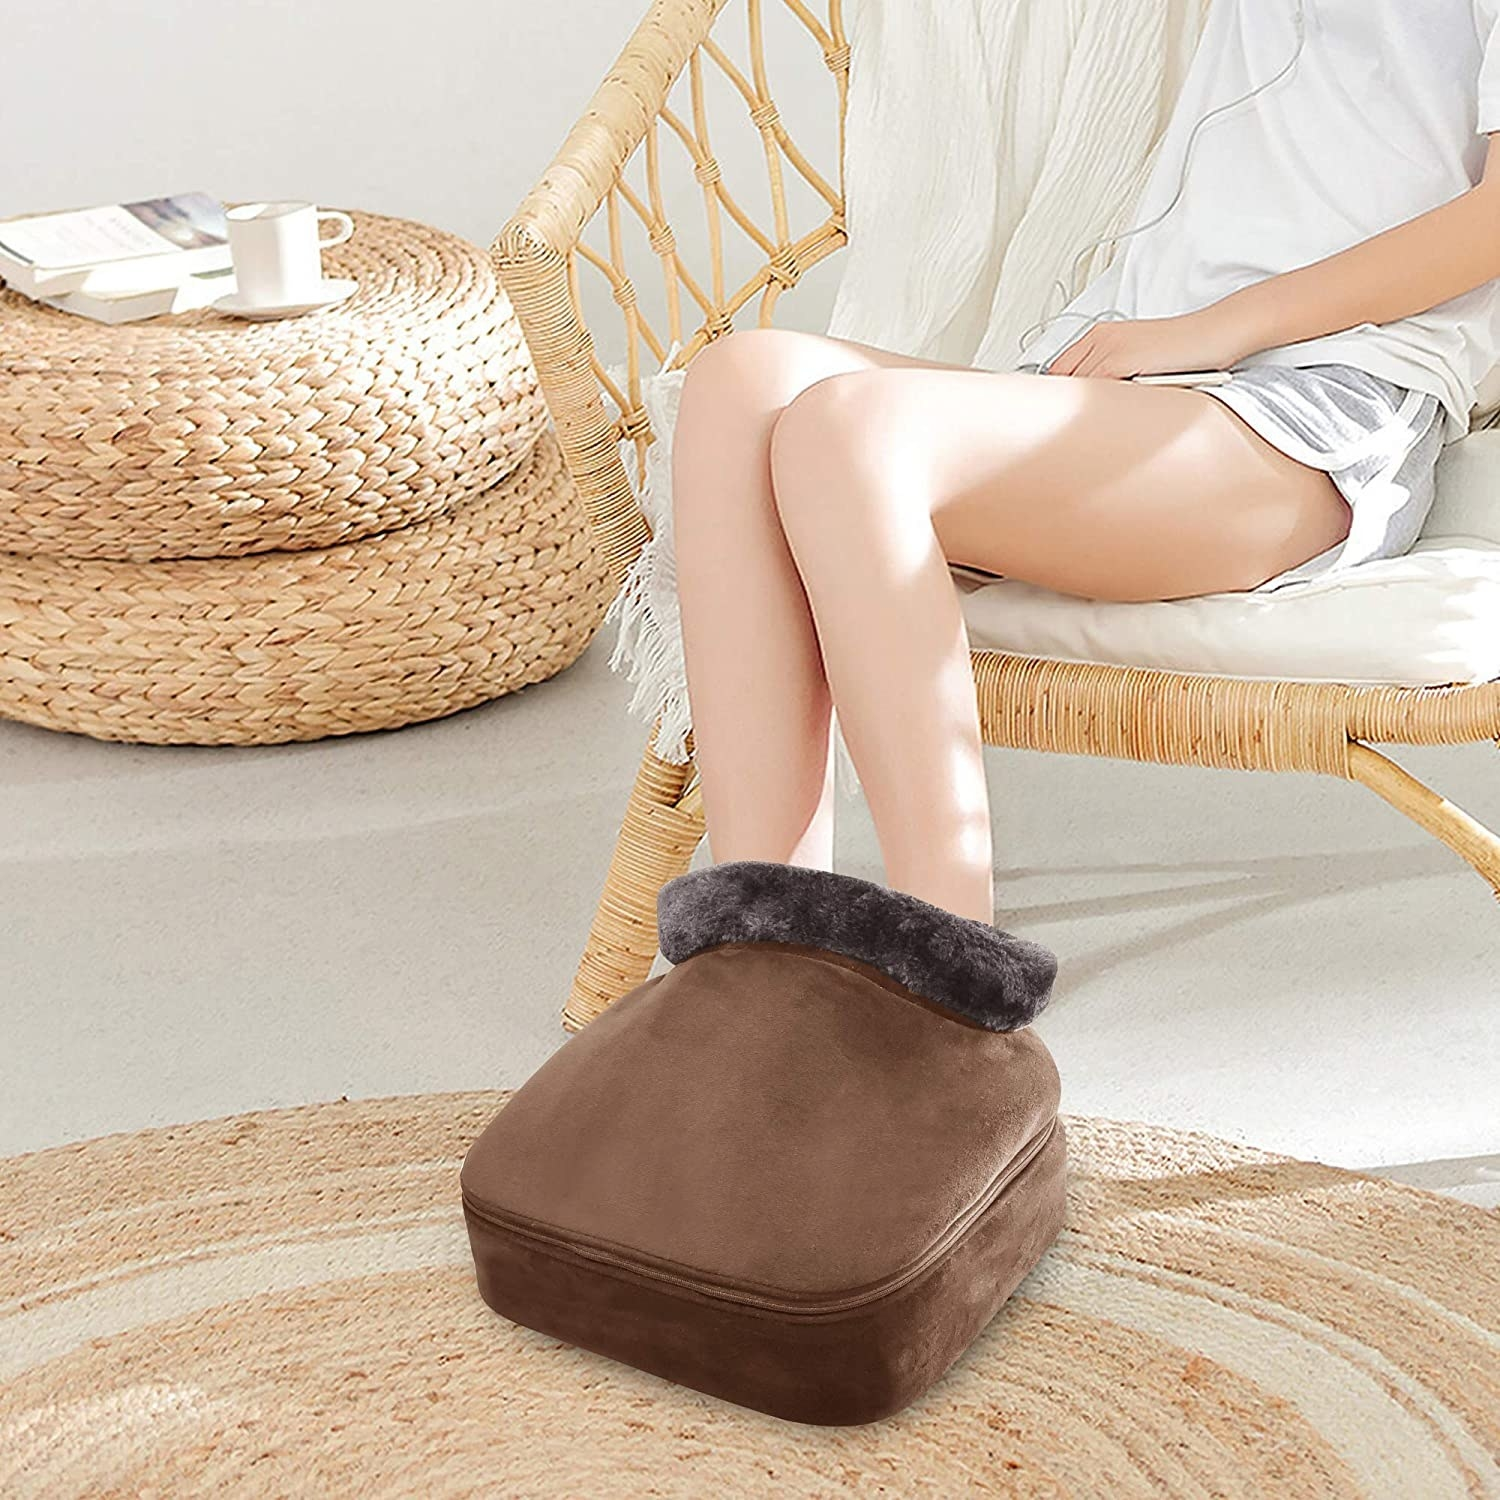 person using a brown foot warmer and massager while sitting in a chair